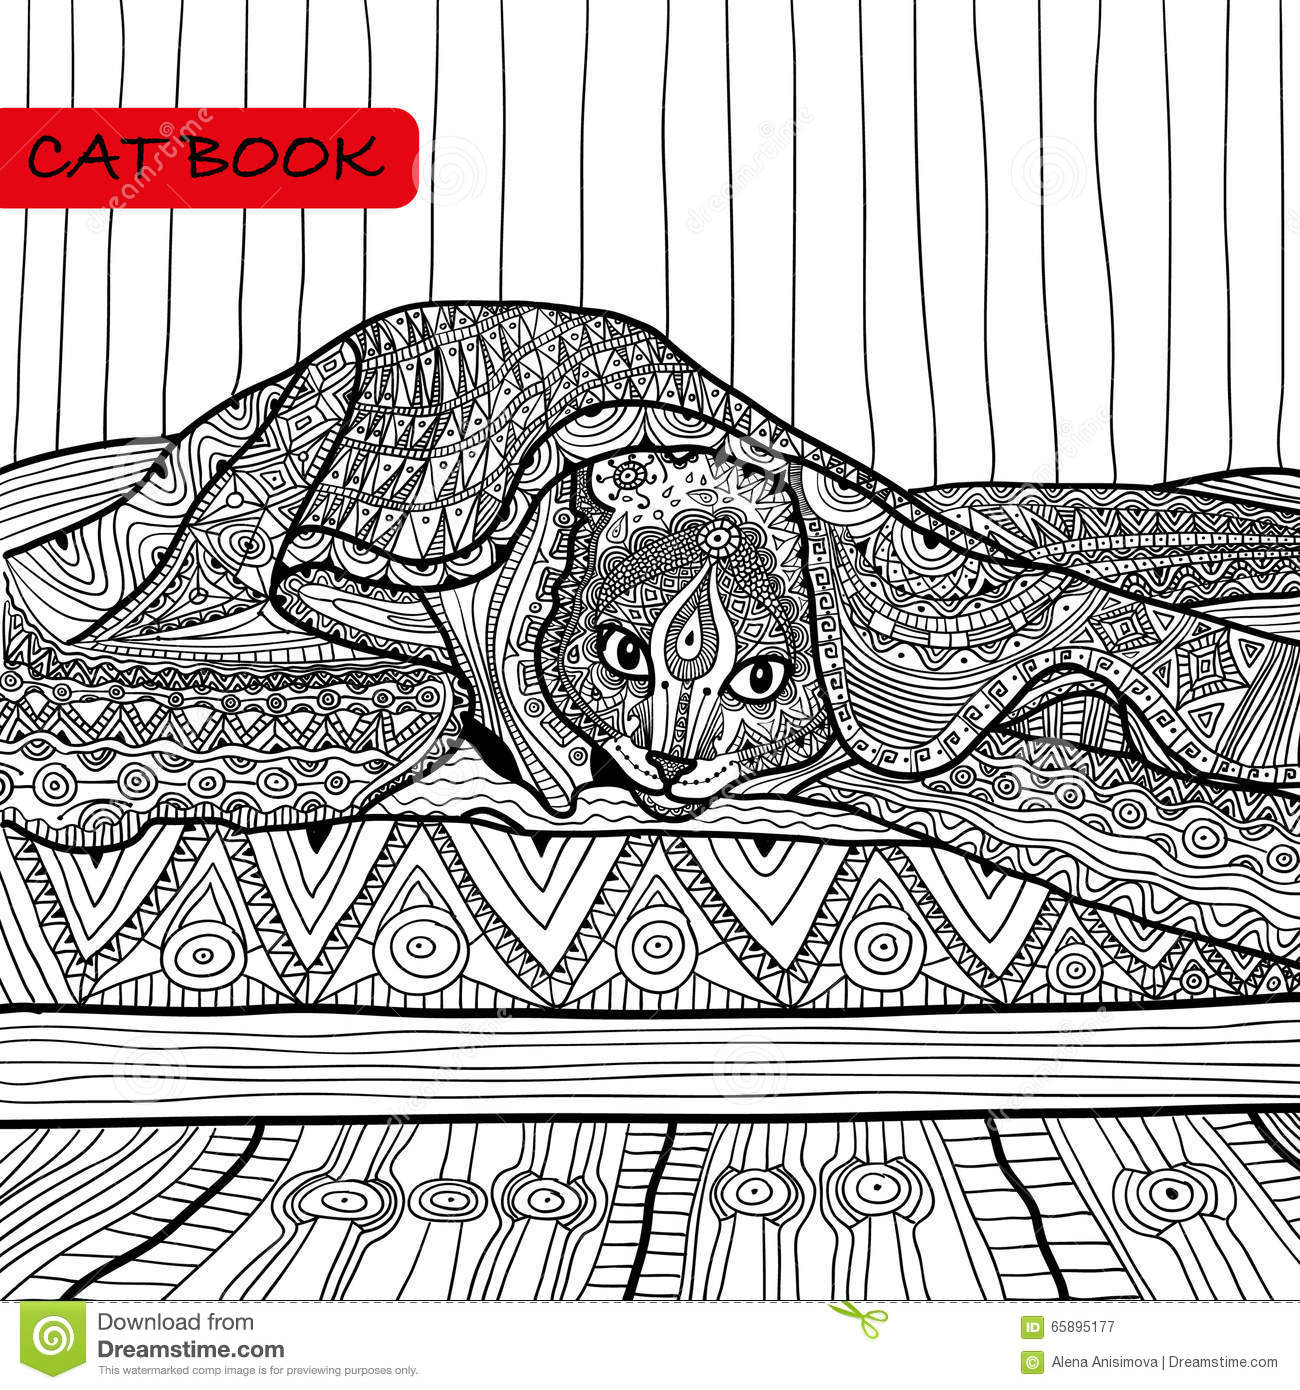 Intricate Cat Coloring Pages : Coloring book for adults zentangle cat the on